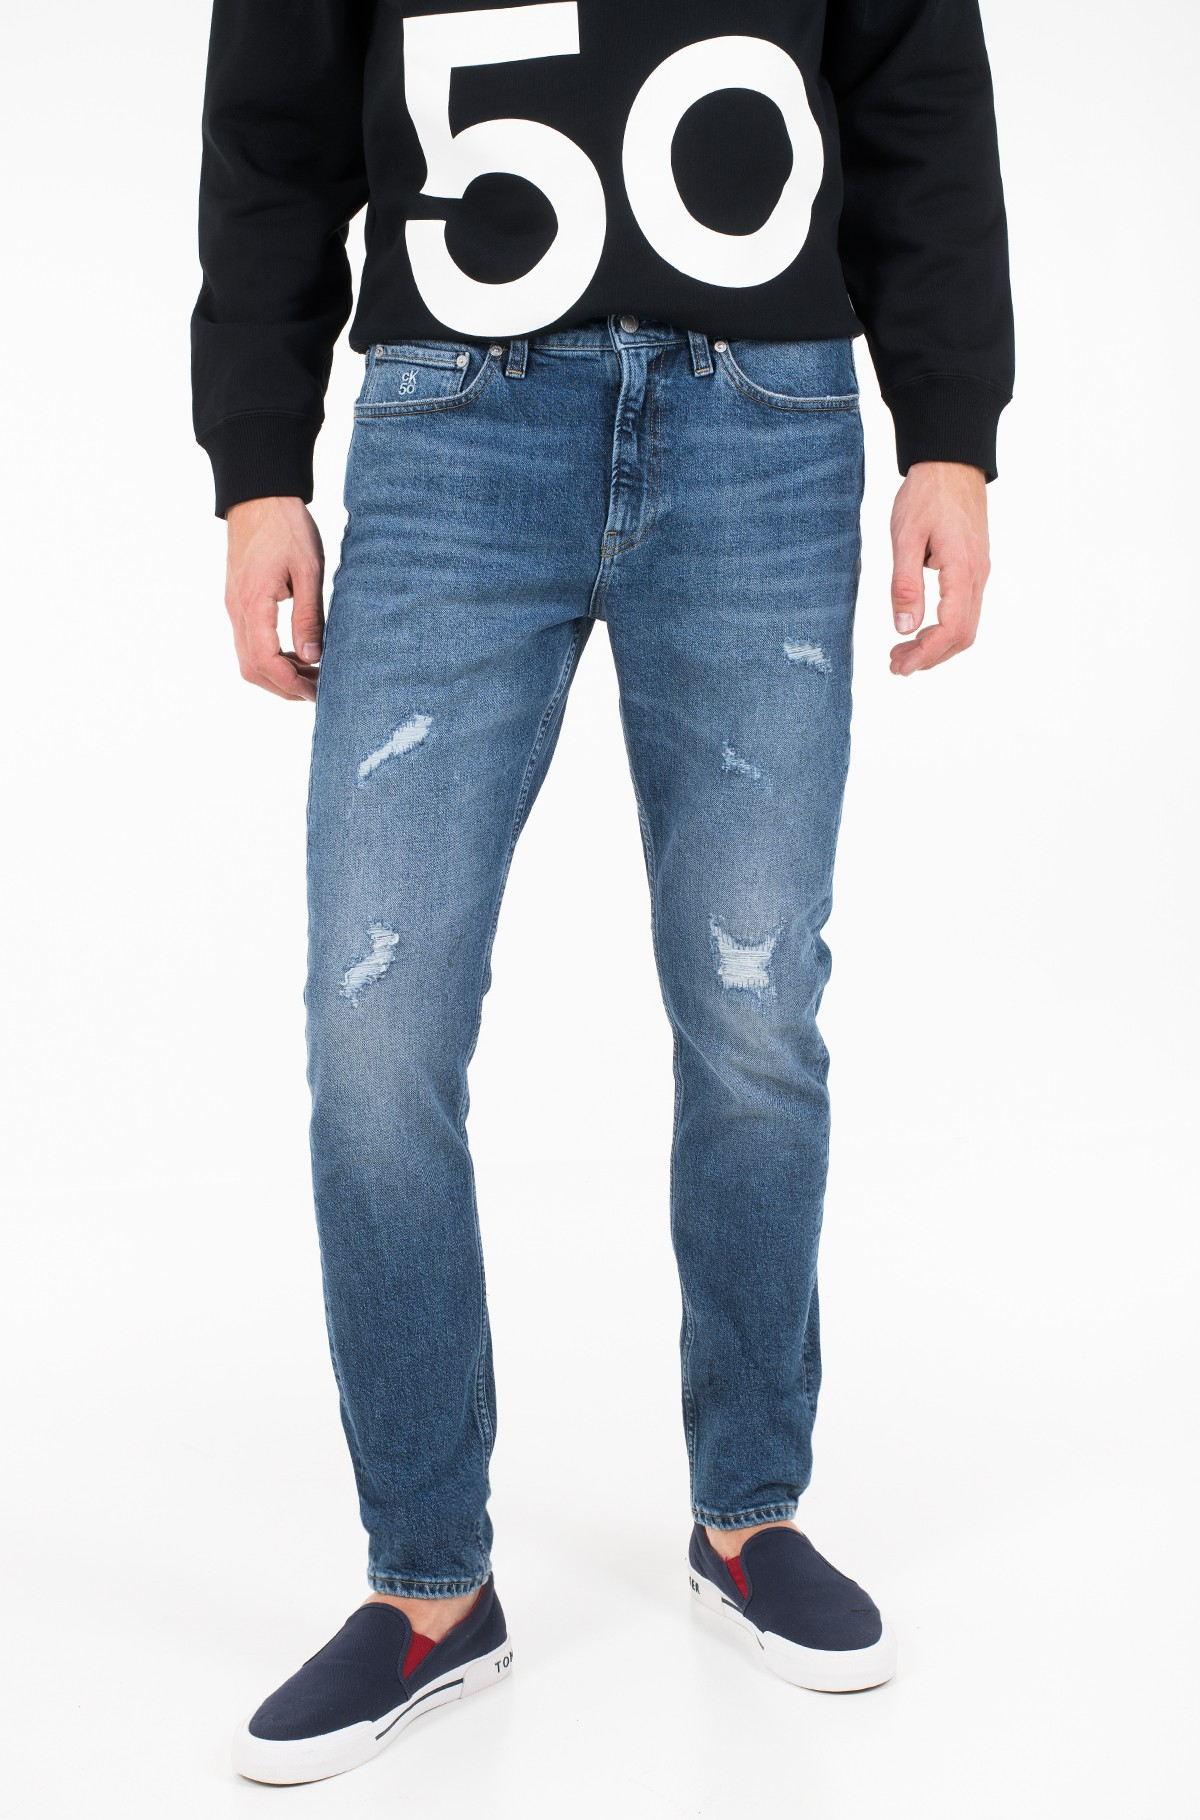 Jeans CKJ 058 SLIM TAPER-full-1